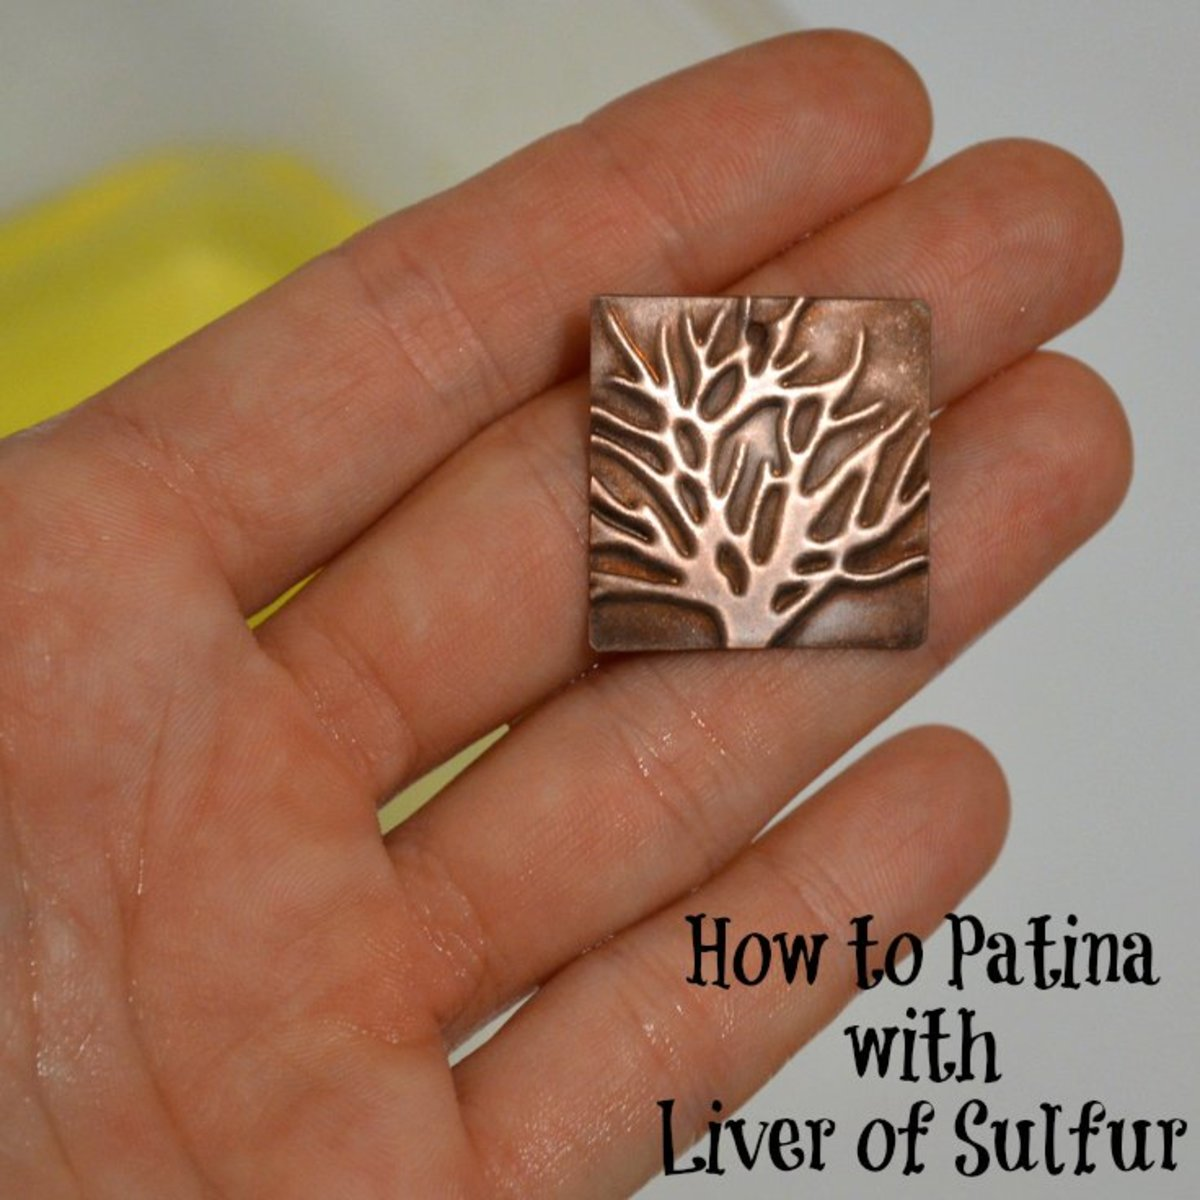 How to Patina with Liver of Sulfur